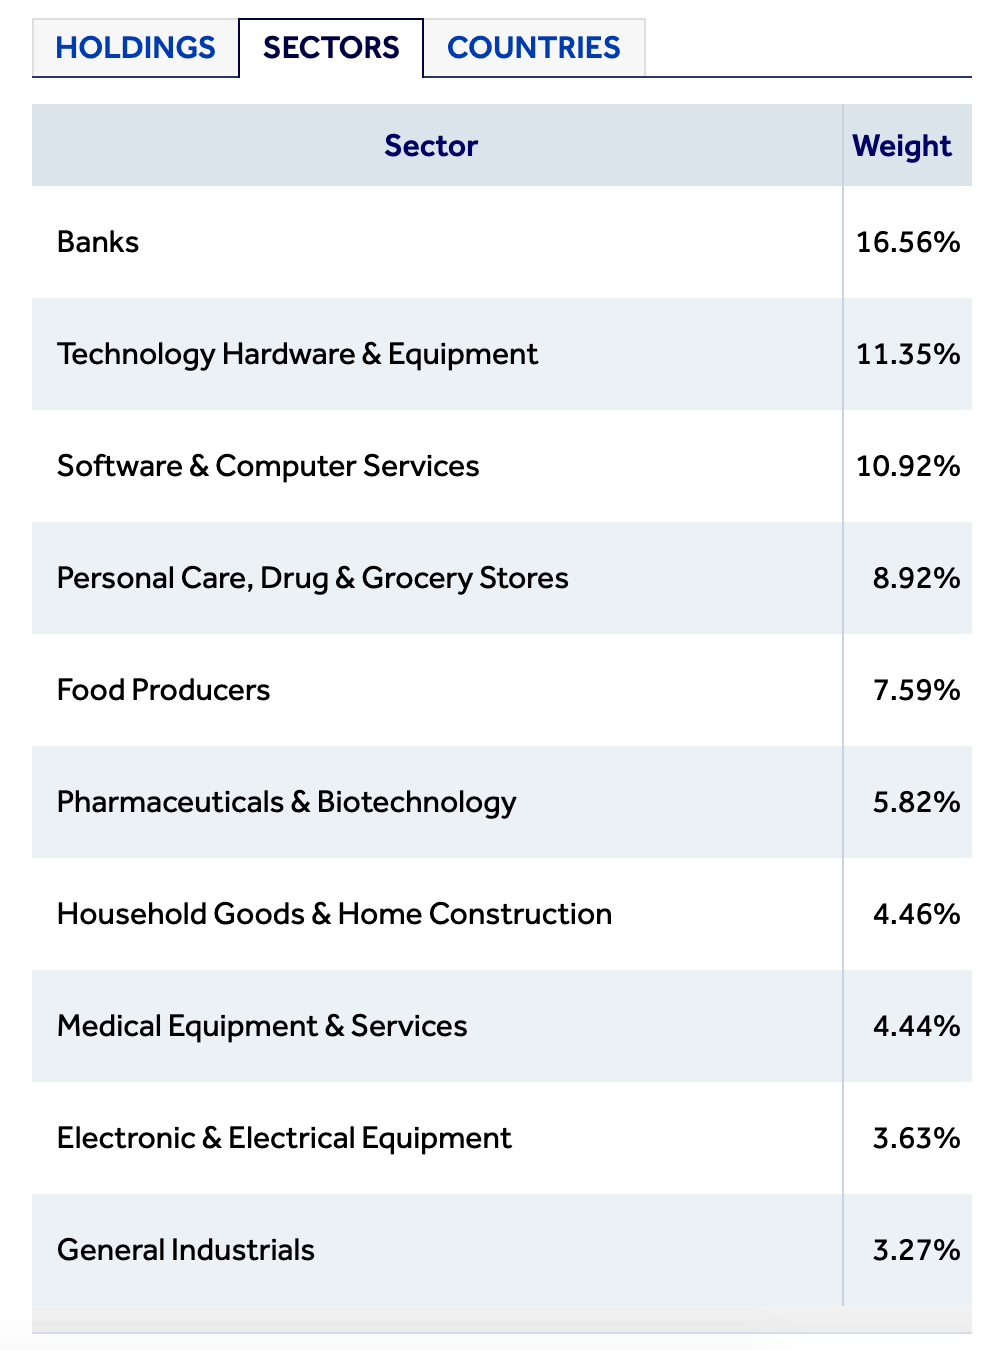 Table breakdown of the percentage weight of each sector